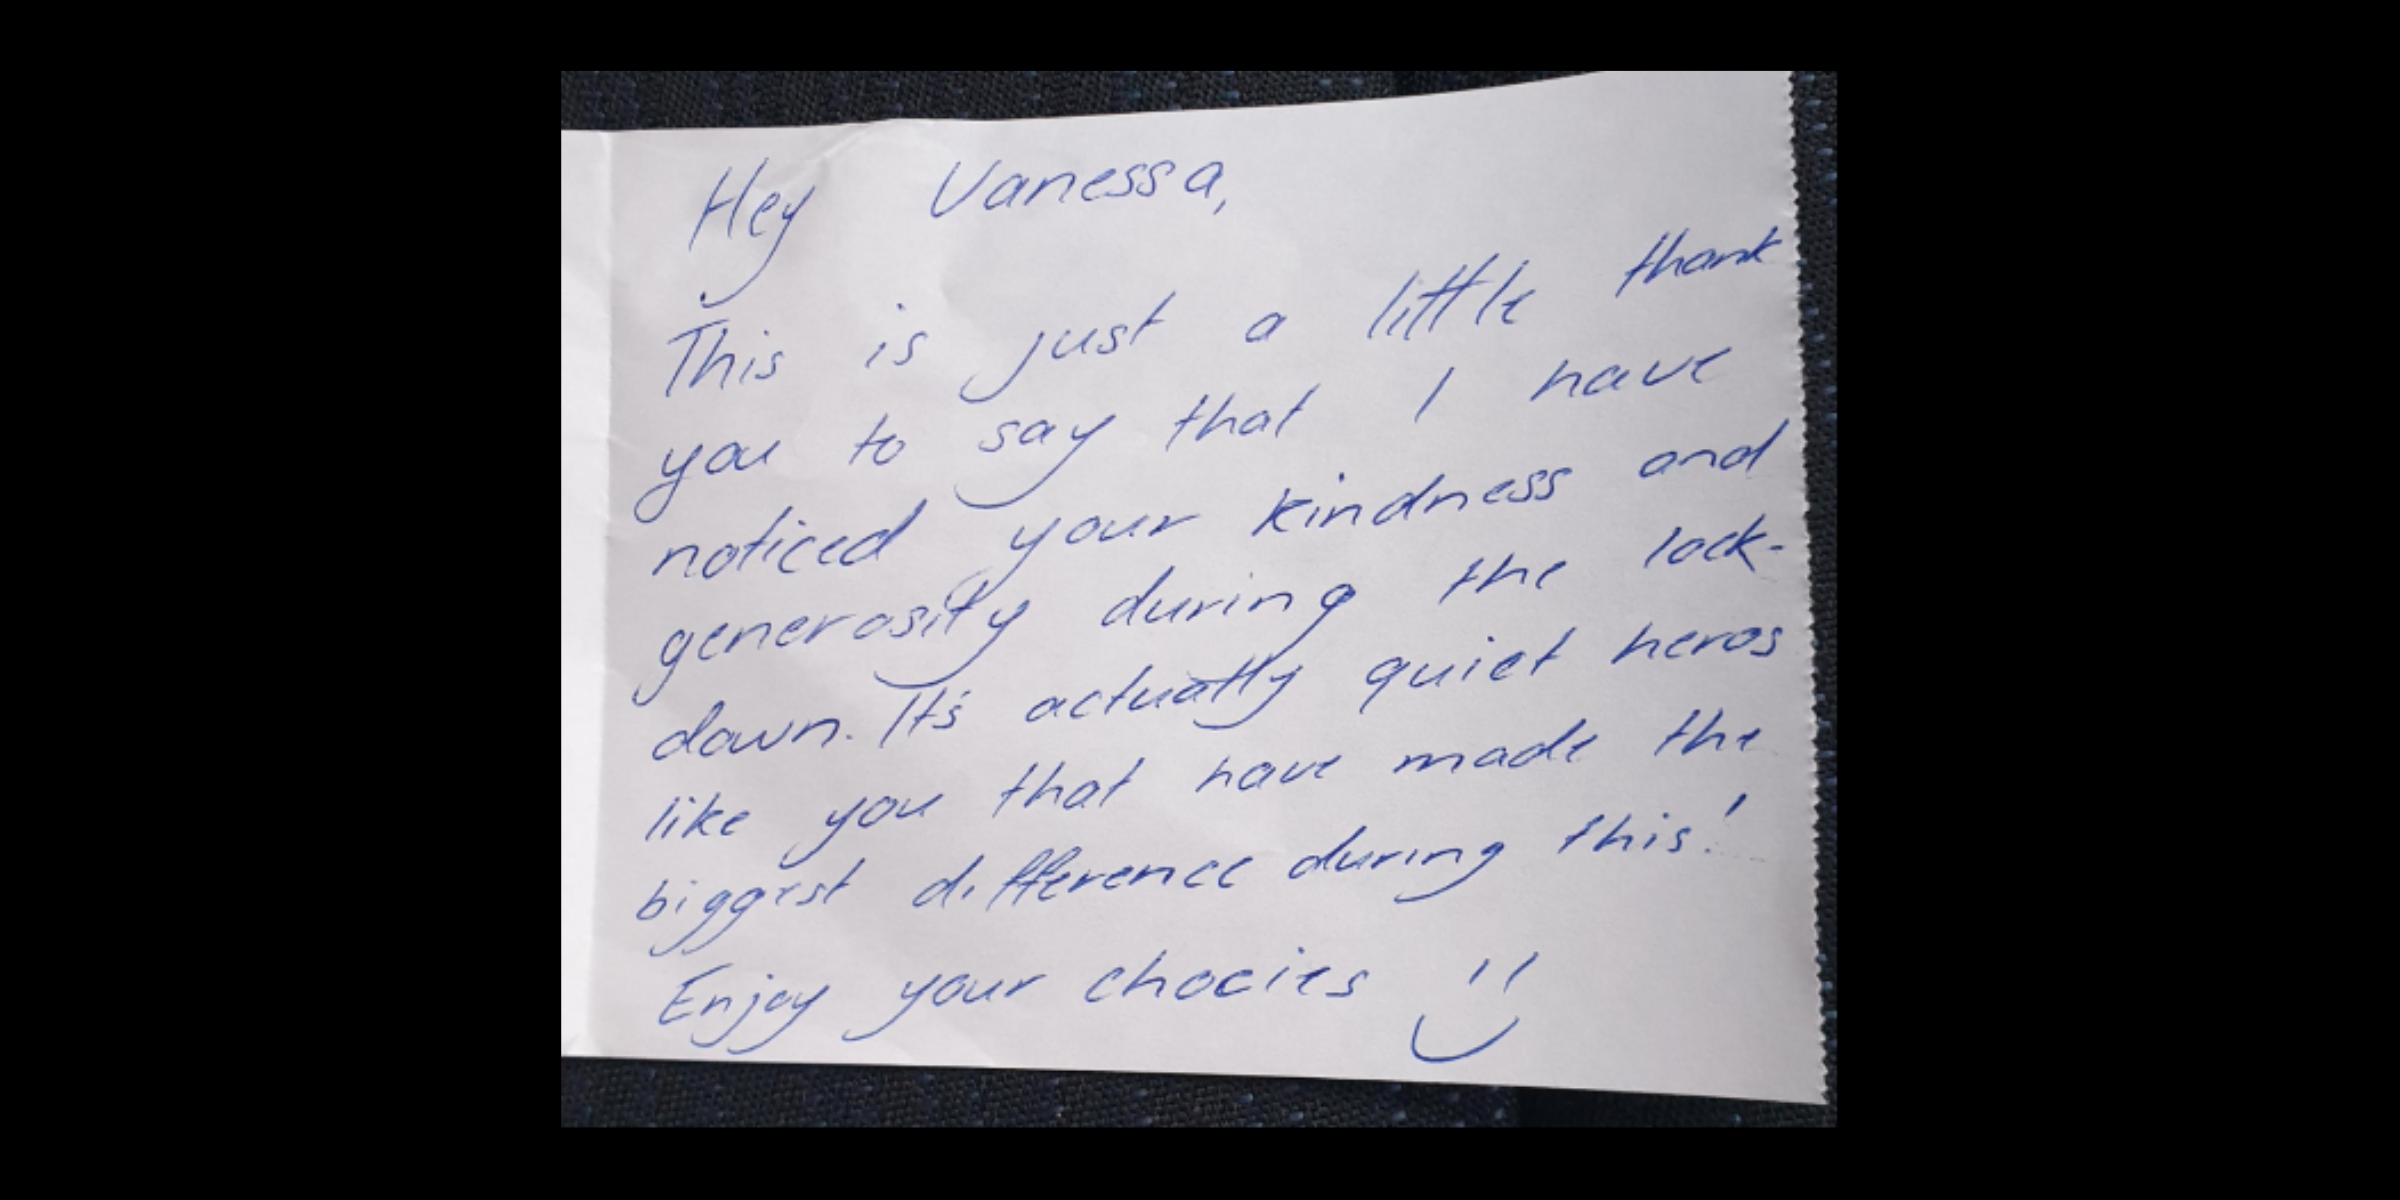 A kind note left for a volunteer by a SVA Grocery customer.